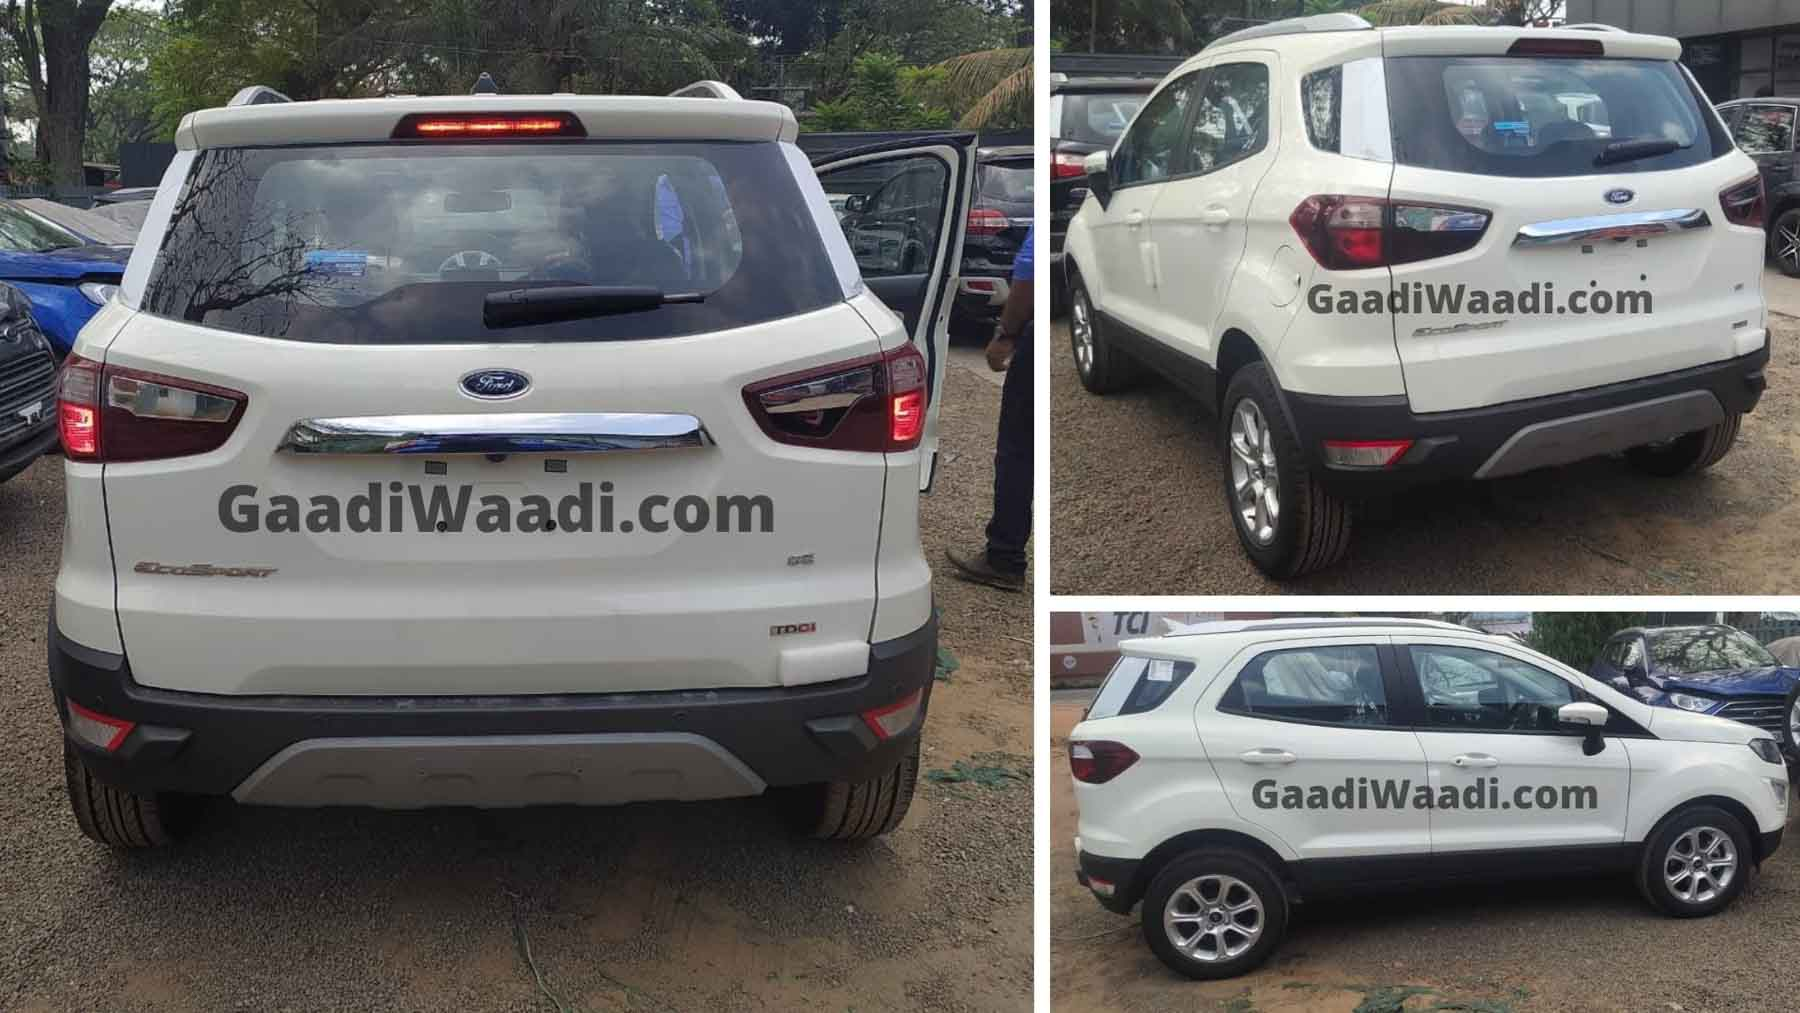 2021 Ford EcoSport SE Spotted During TVC Shoot In India - GaadiWaadi.com